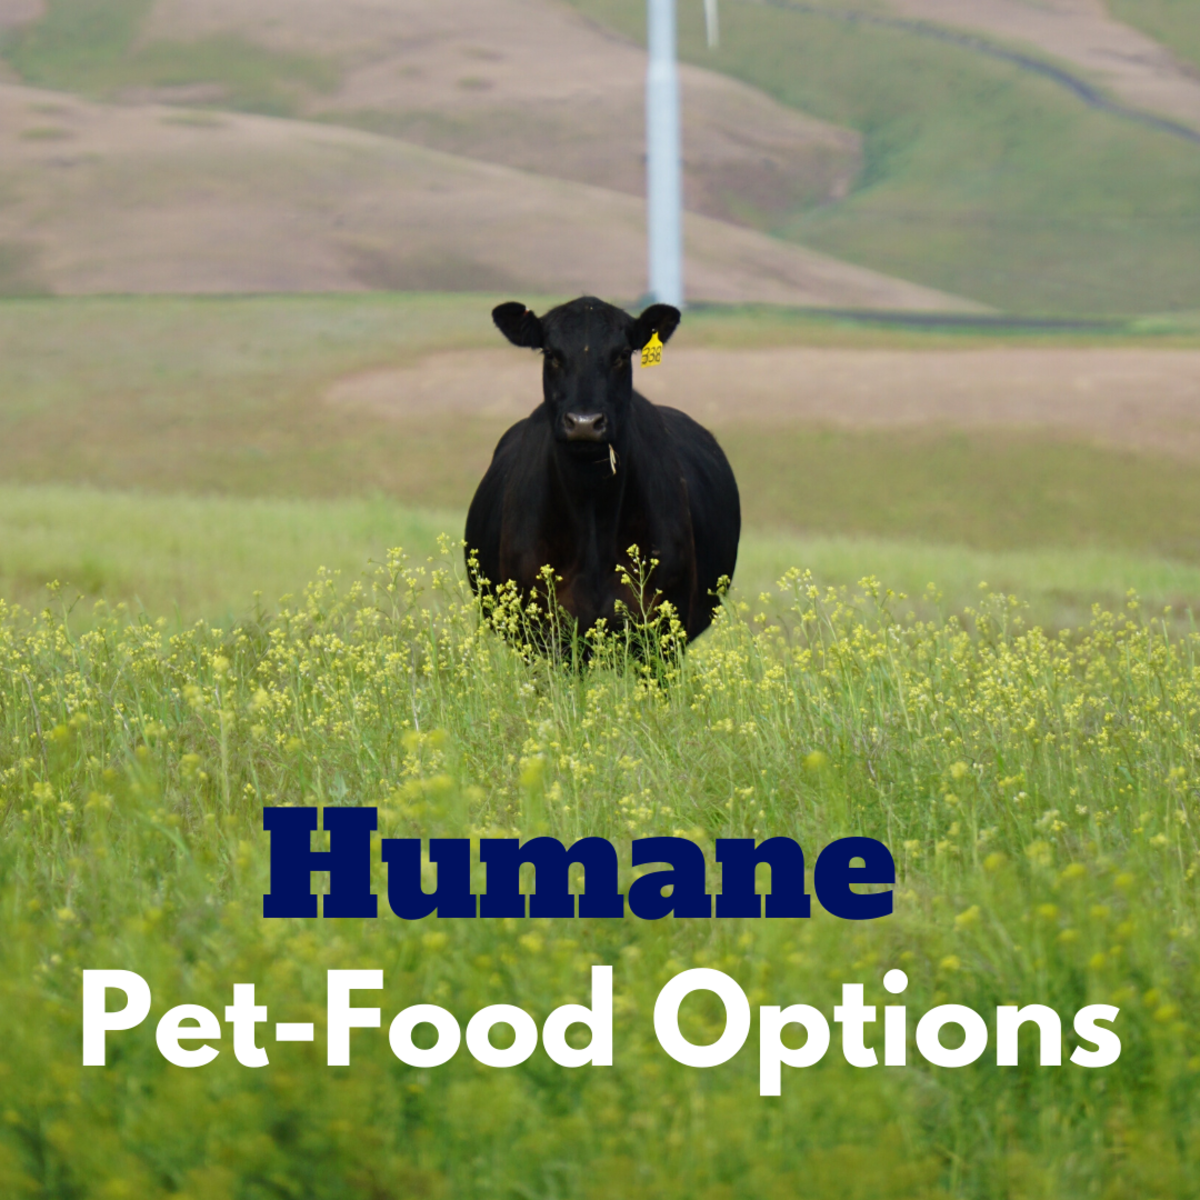 Humane Dog and Cat Food Options